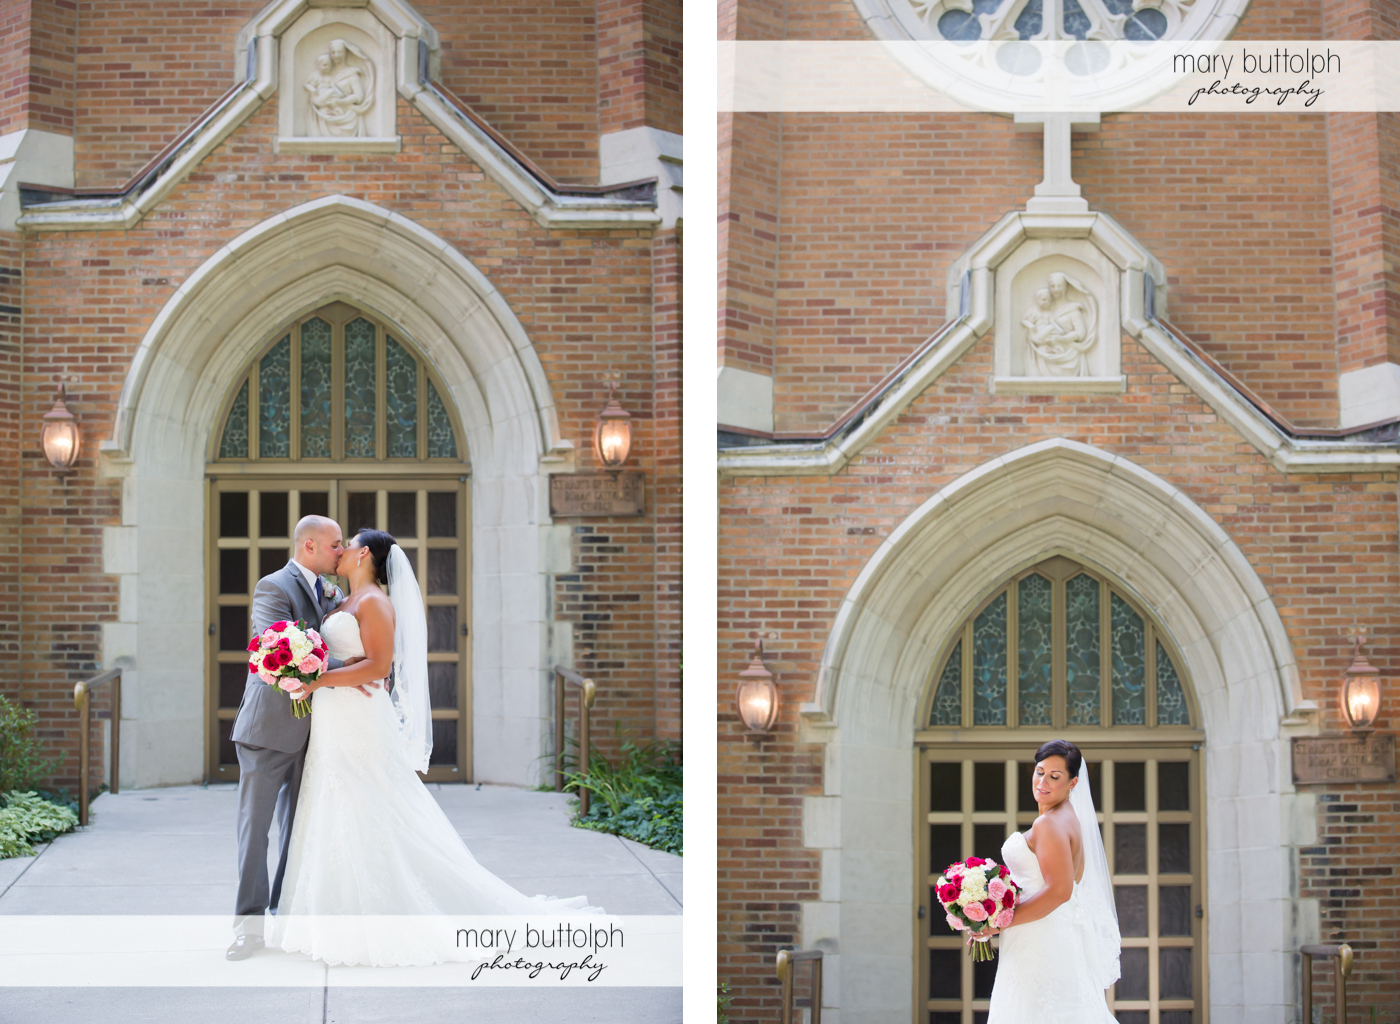 Couple kiss in front of the church and bride in solo pose at The Lodge at Welch Allyn Wedding